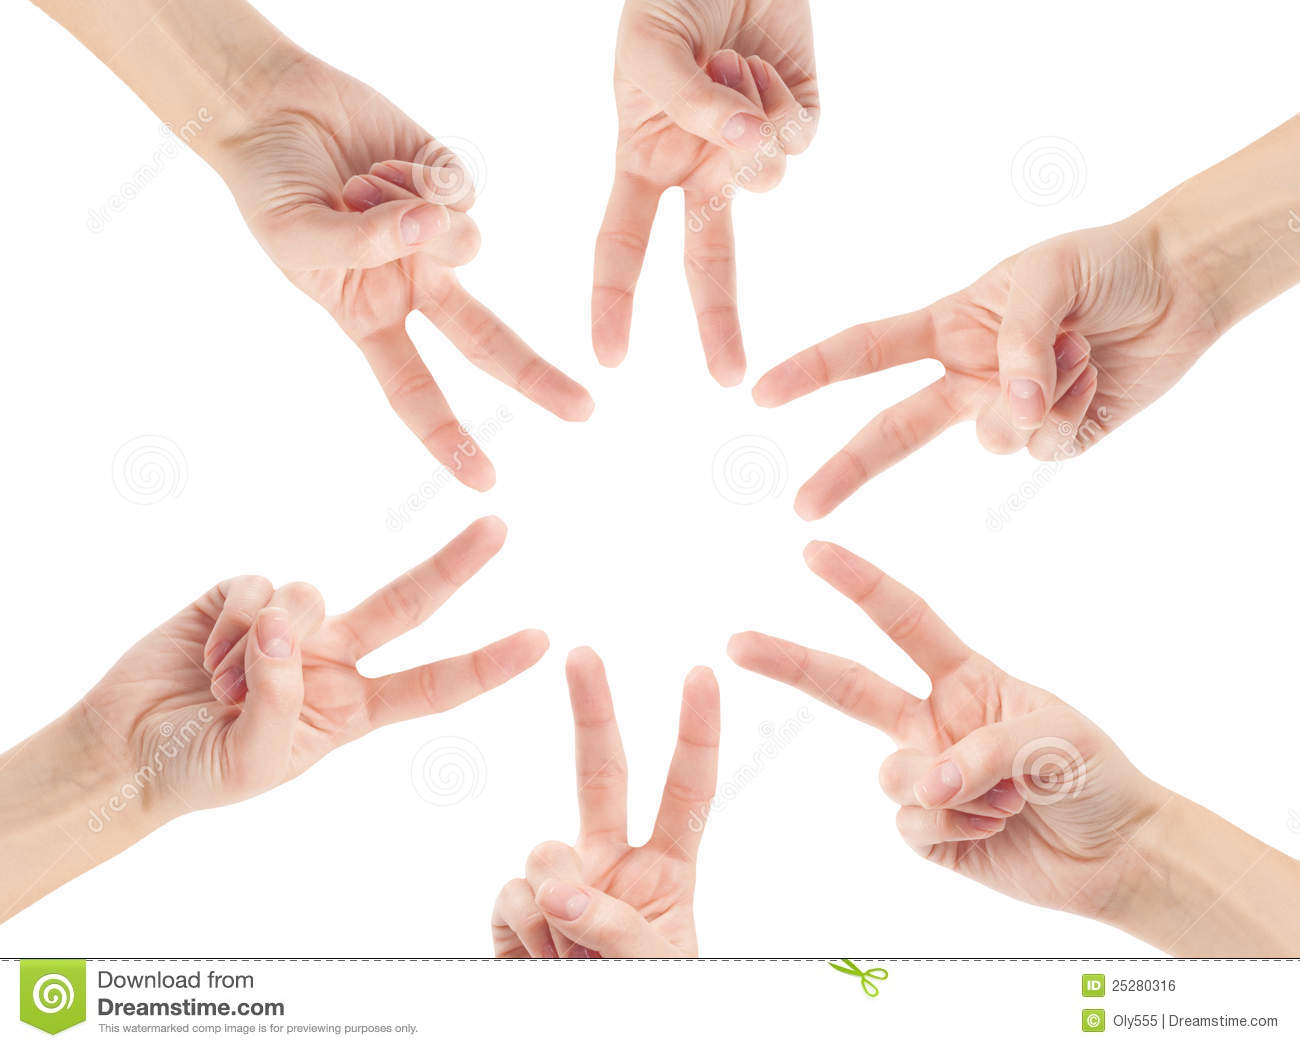 Hands Of Teamwork Royalty Free Stock Image - Image: 25280316